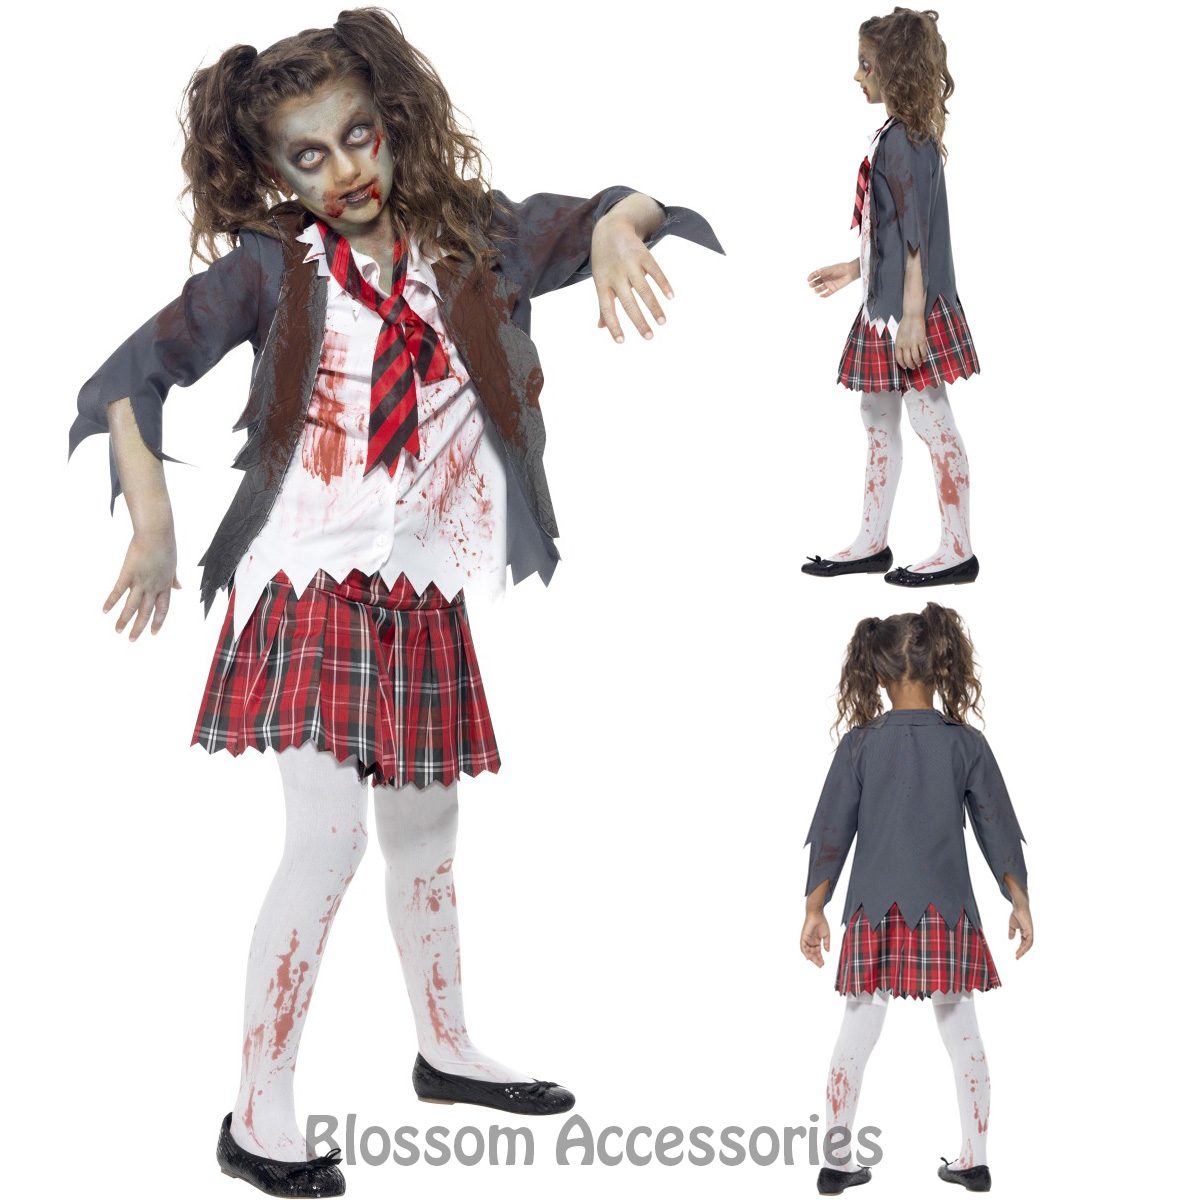 How to Dress Up As a Dead School Girl for Halloween